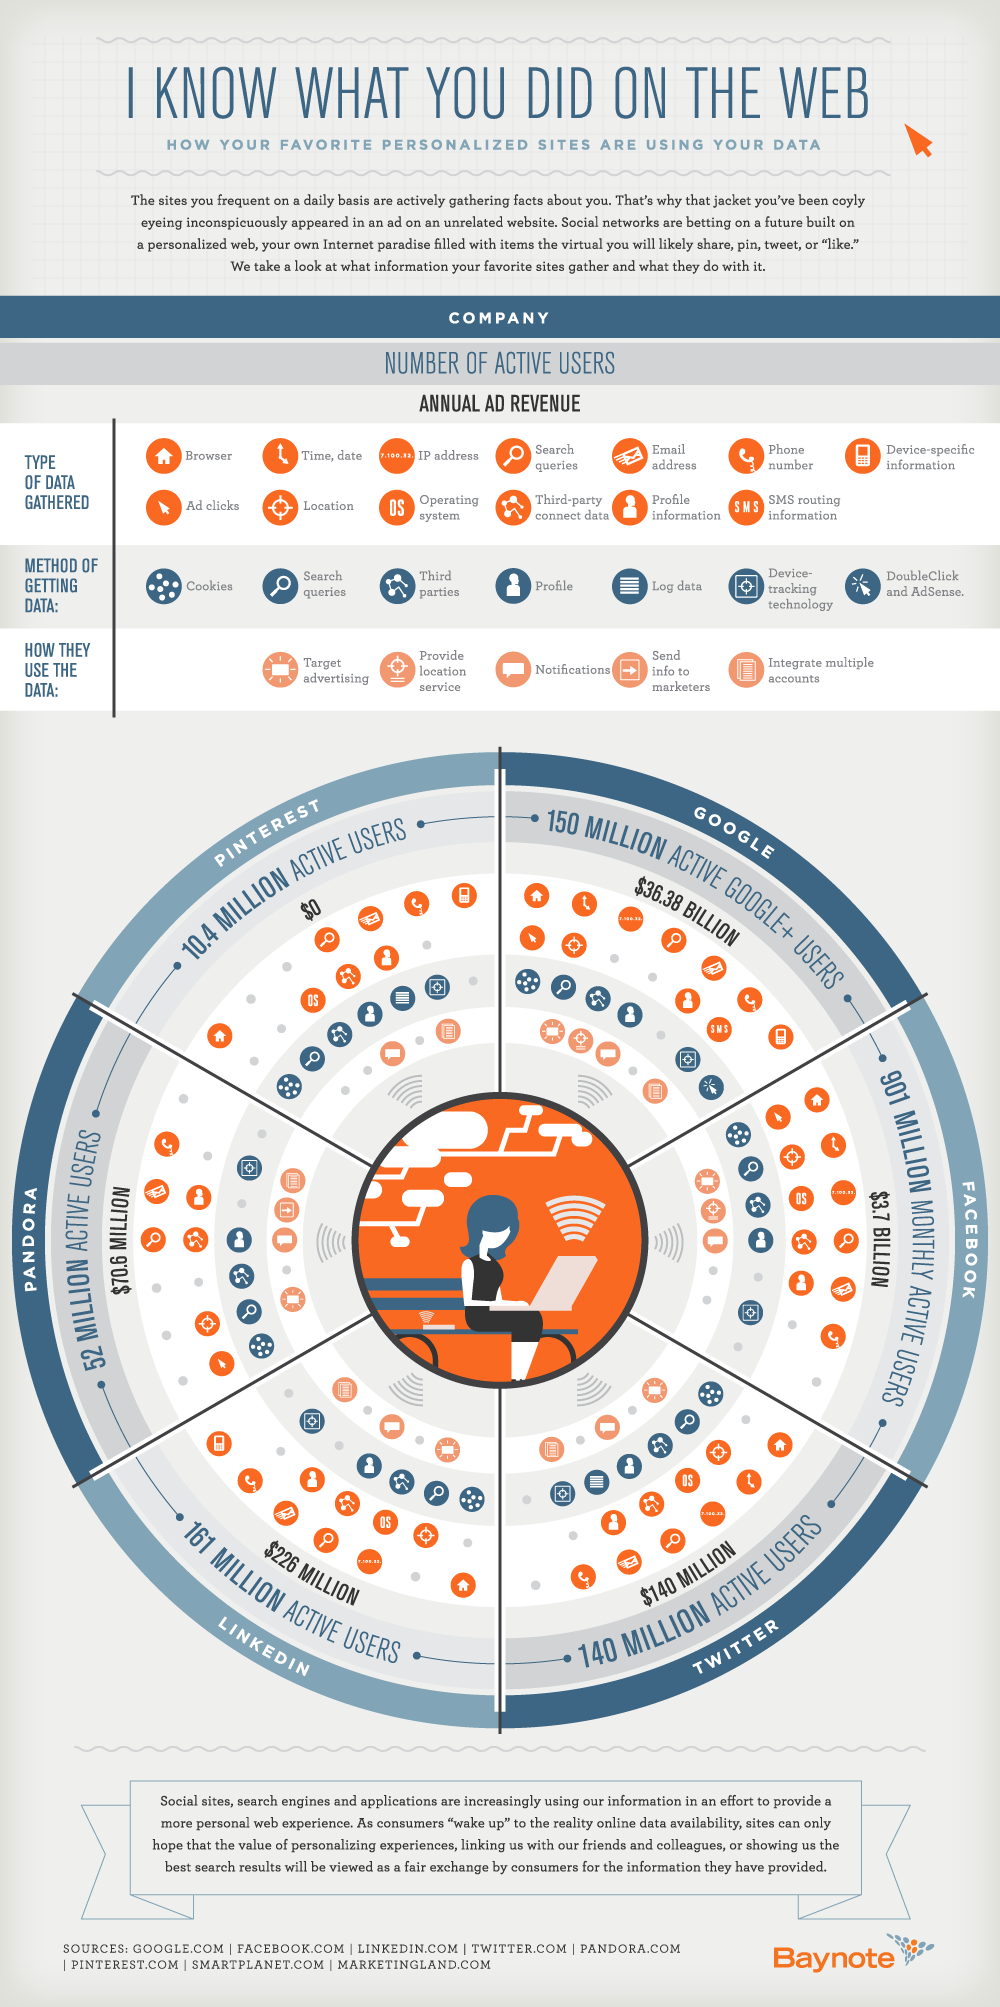 What Do Twitter, Facebook, Google And Pinterest Know About YOU? [INFOGRAPHIC]